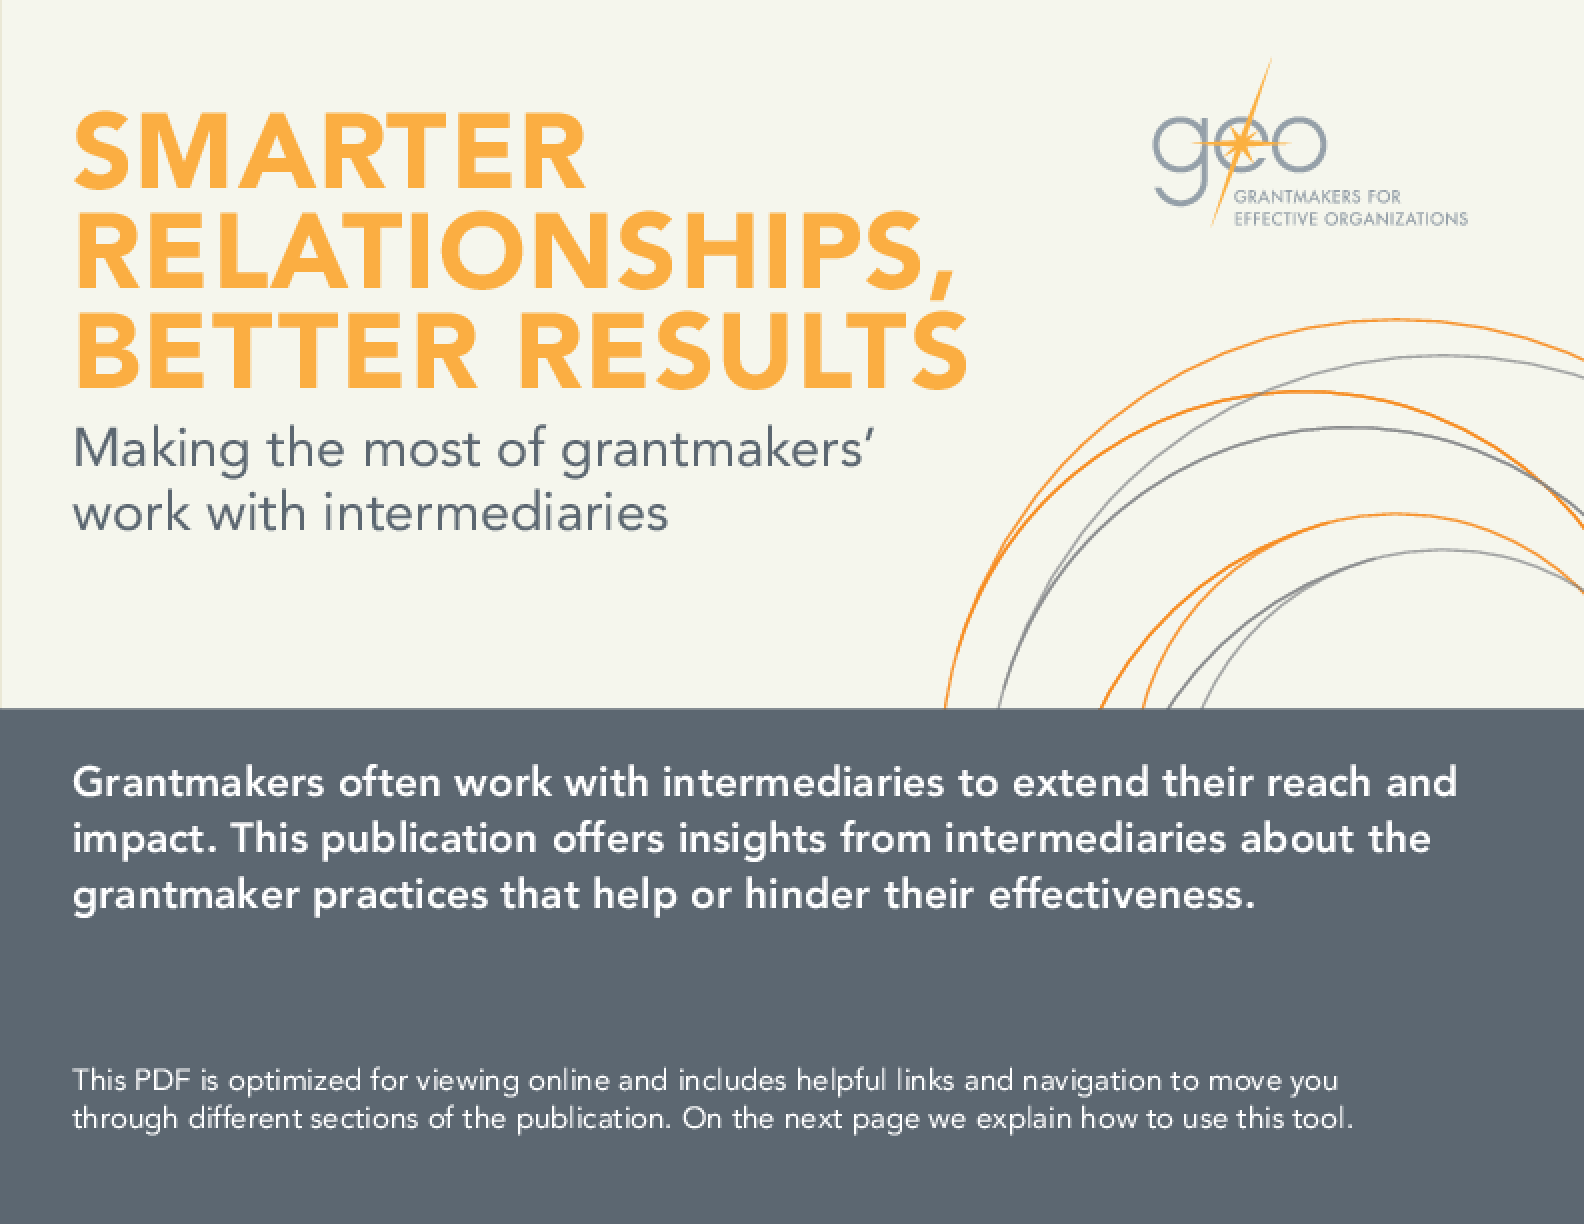 Smarter Relationships, Better Results: Making the Most of Grantmakers' Work with Intermediaries